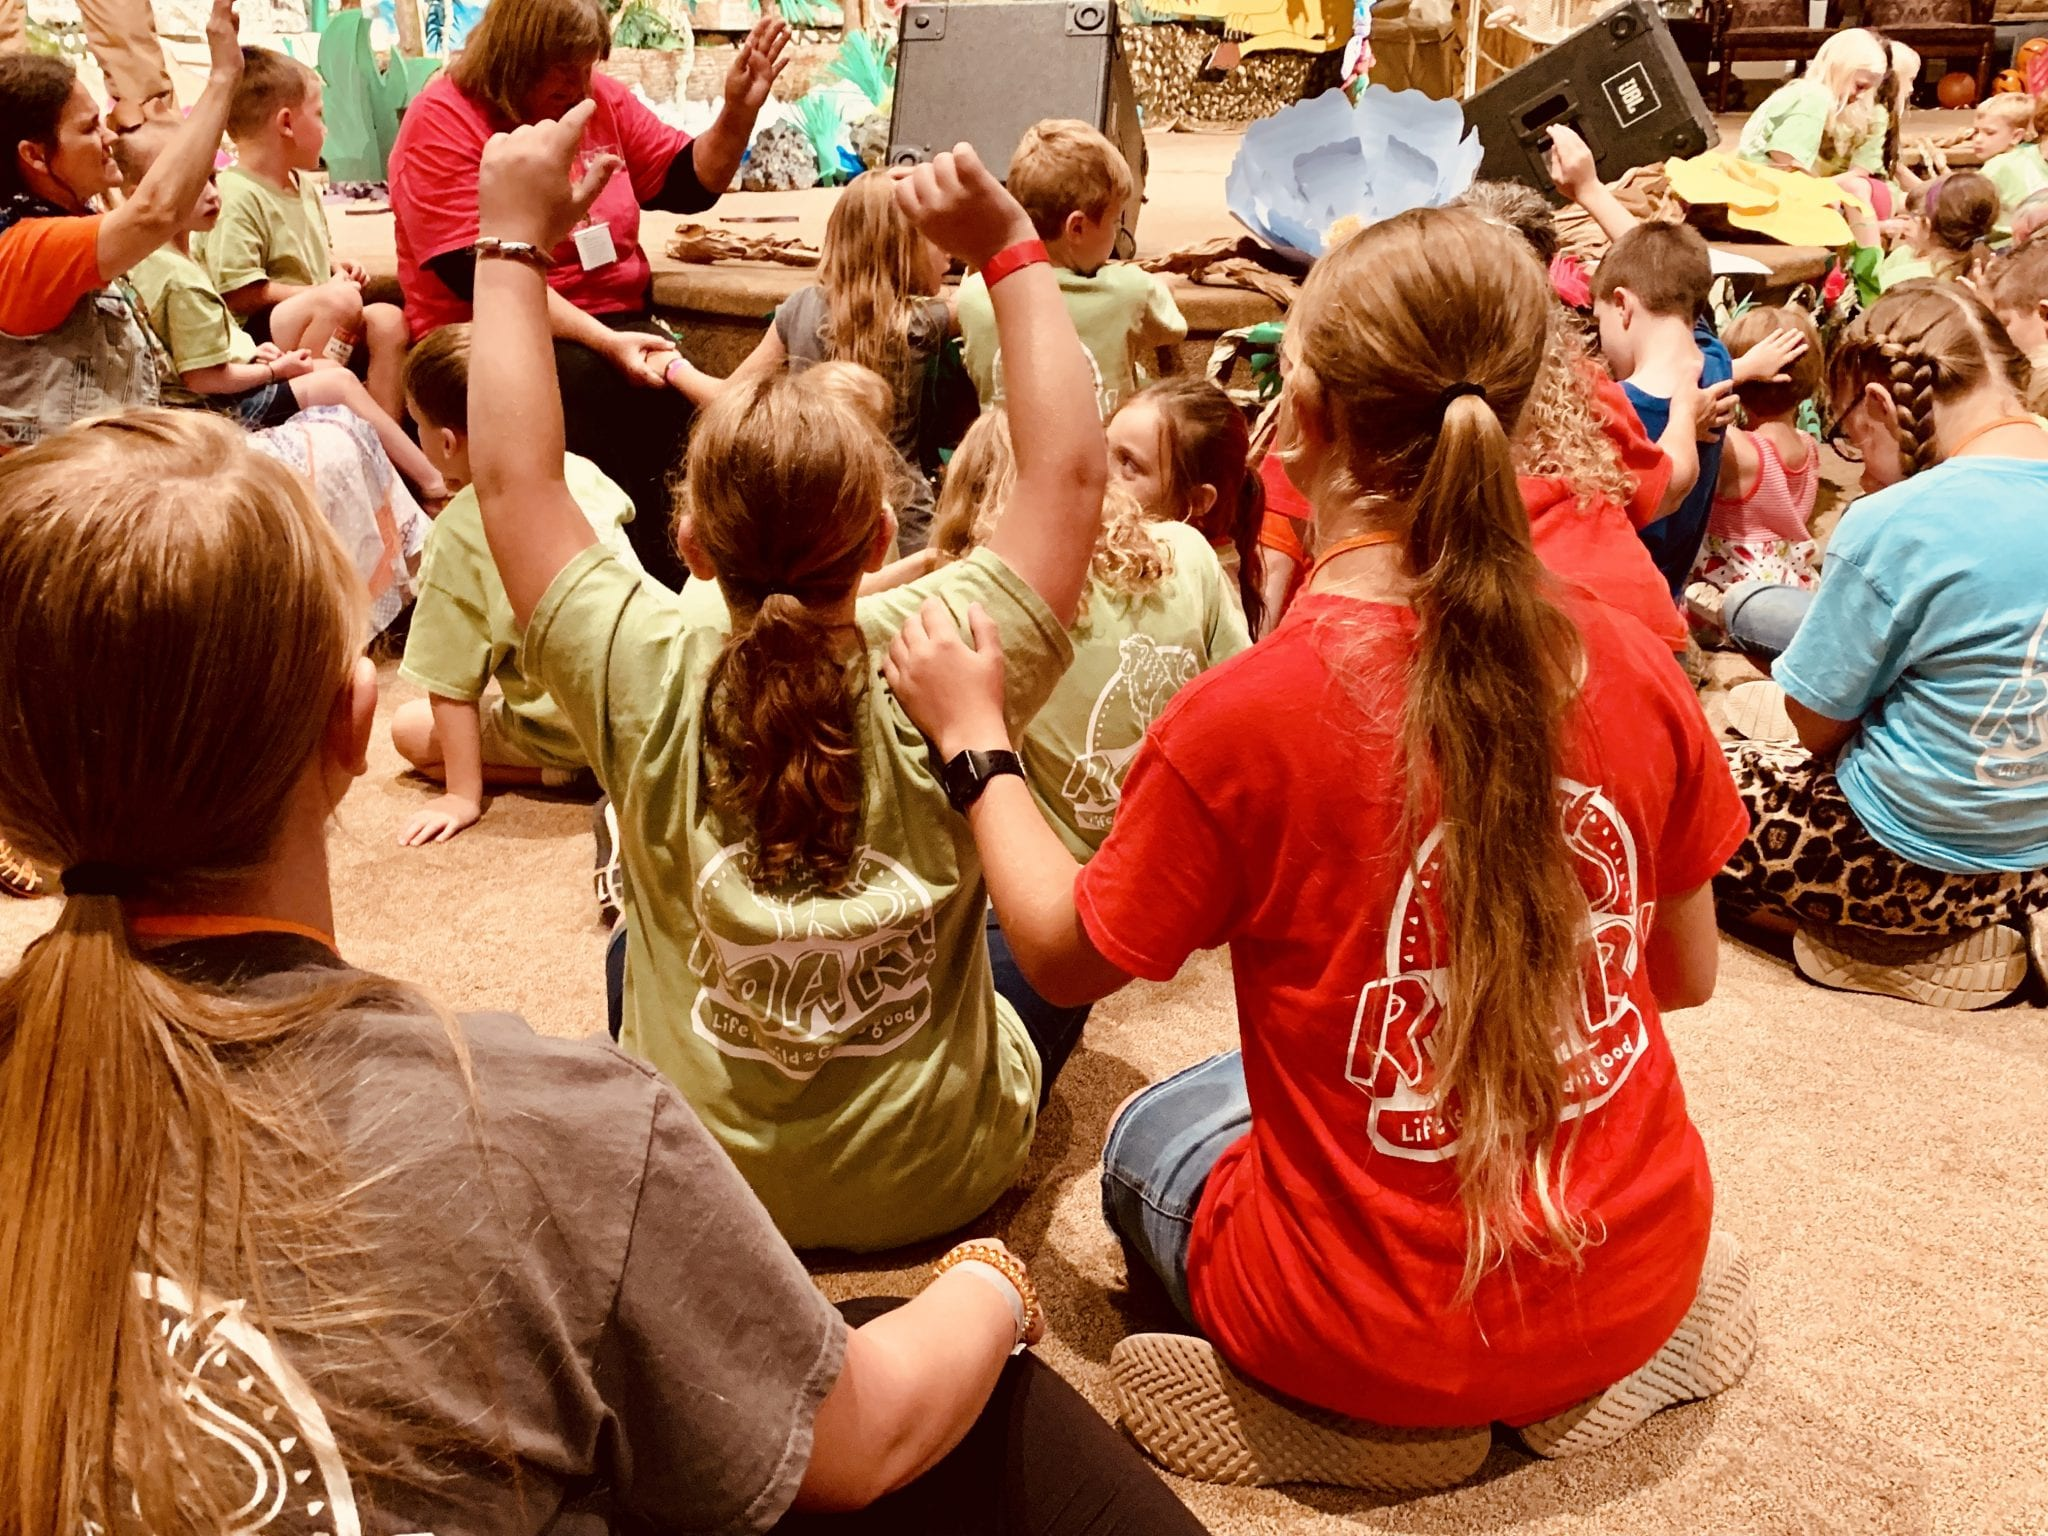 children worshipping and praying during Roar Vacation Bible School at Christ Community Church The Pentecostals - Henderson, TN